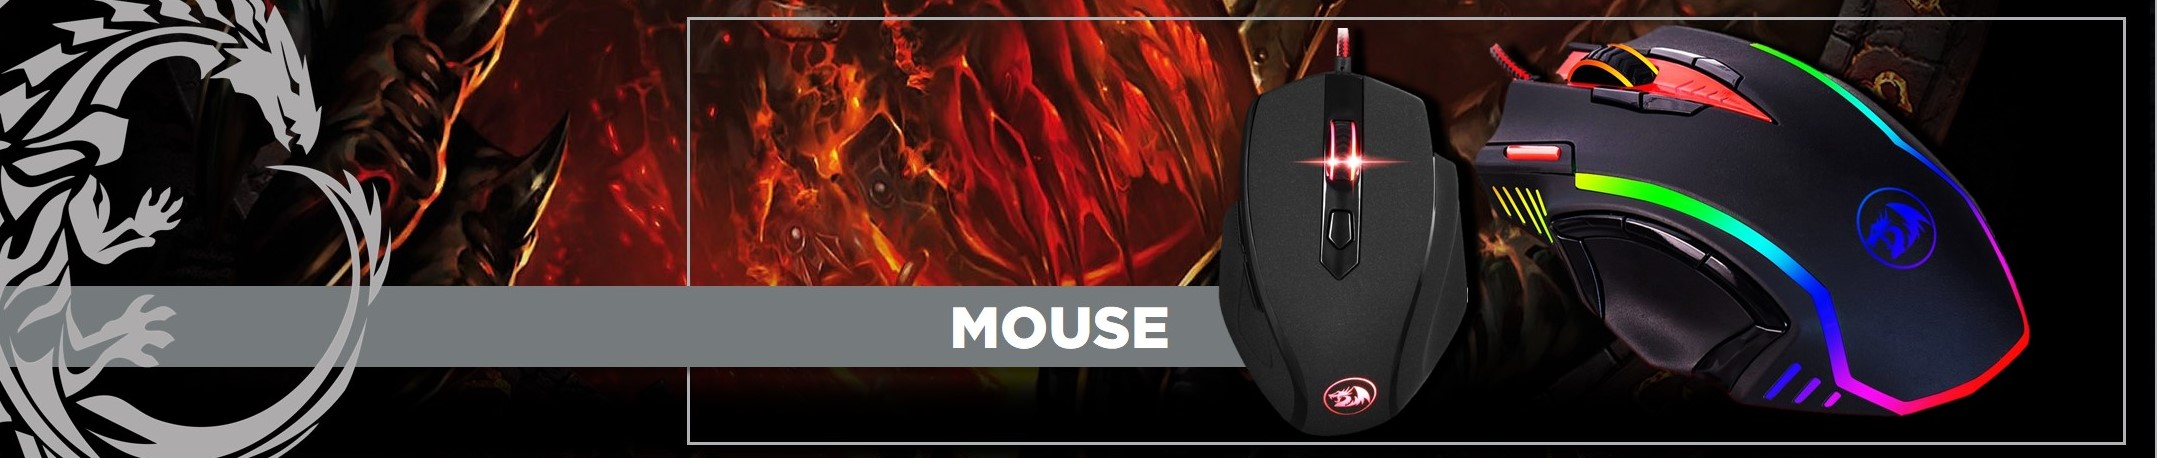 Redragon PC Gaming Mouse